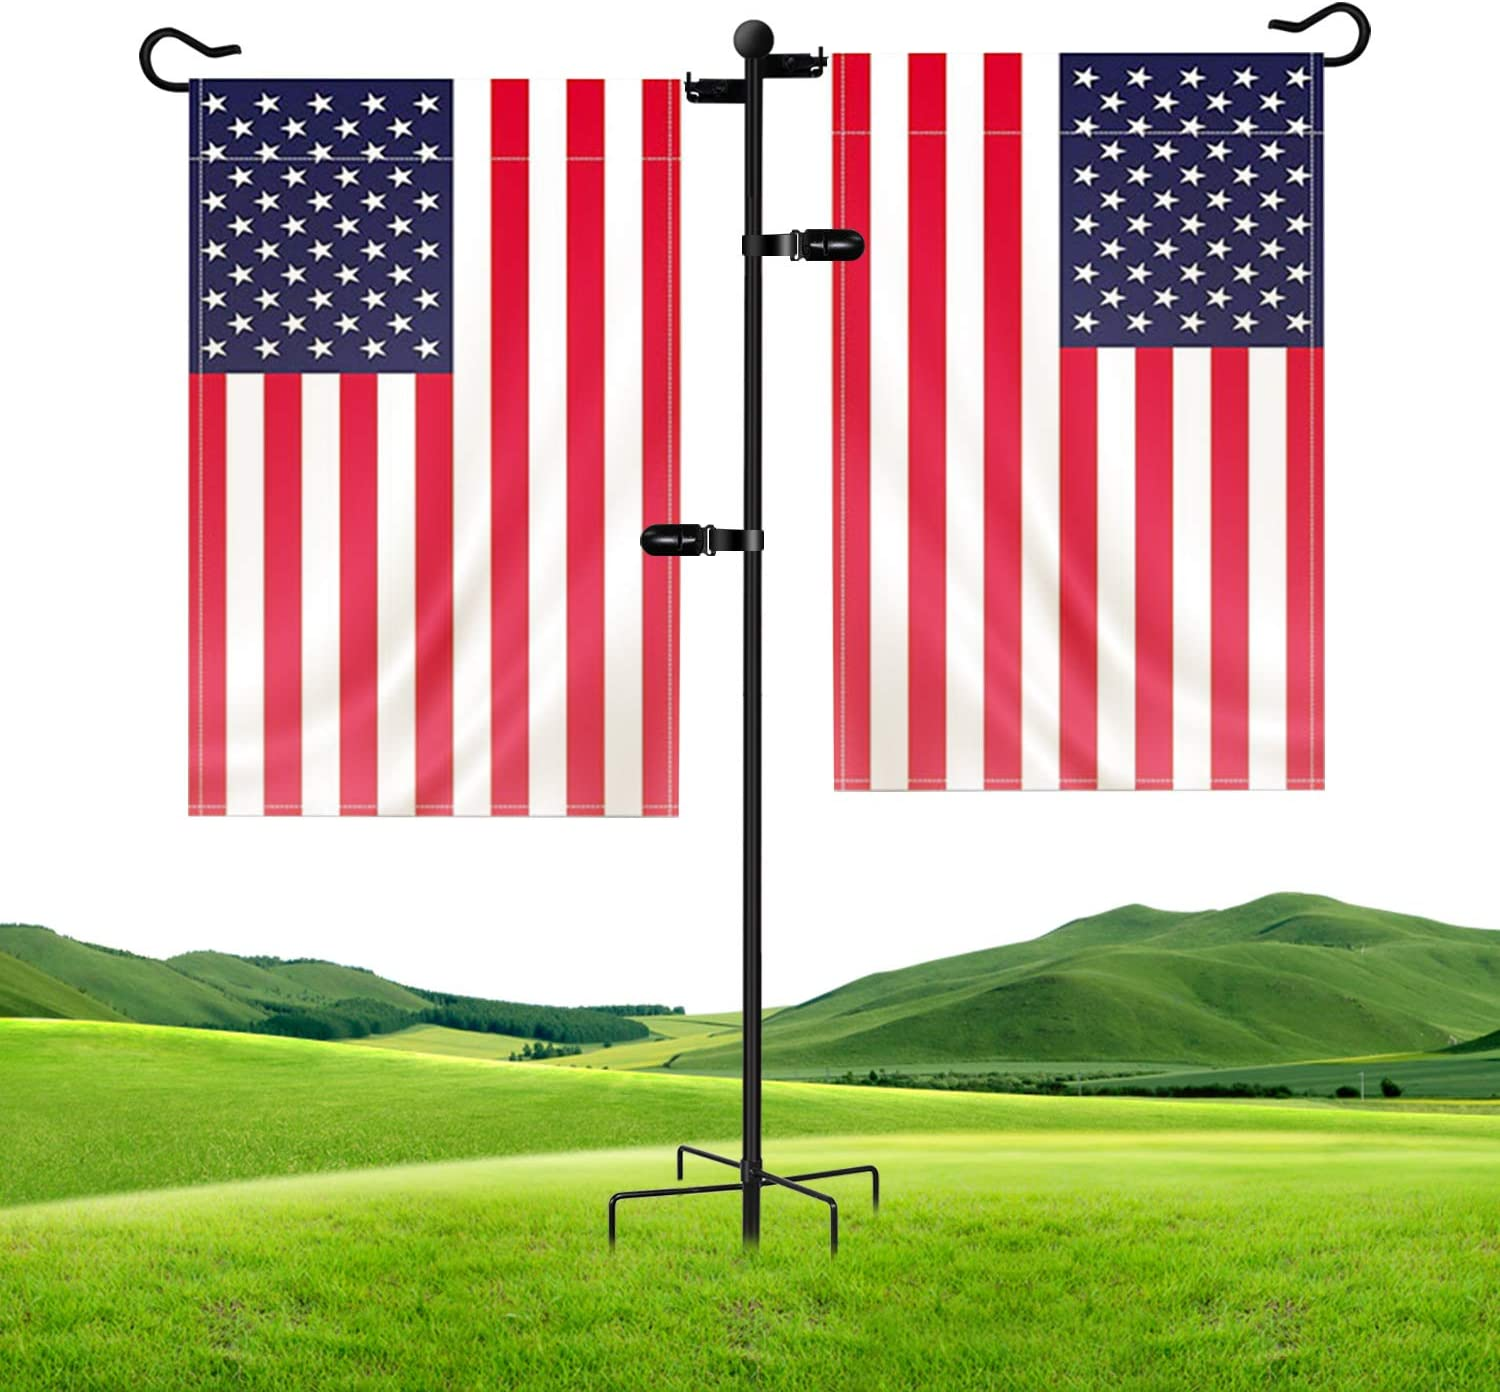 "JOYSEUS Garden Flag Stand, Upgrade Dual Flag Holder Stand, 1/2 Inch Thick Heavy Duty Rust Resistant Flag Stand, 36"" H x 27"" W for Yards Christmas Decorations (Flags not Included)"